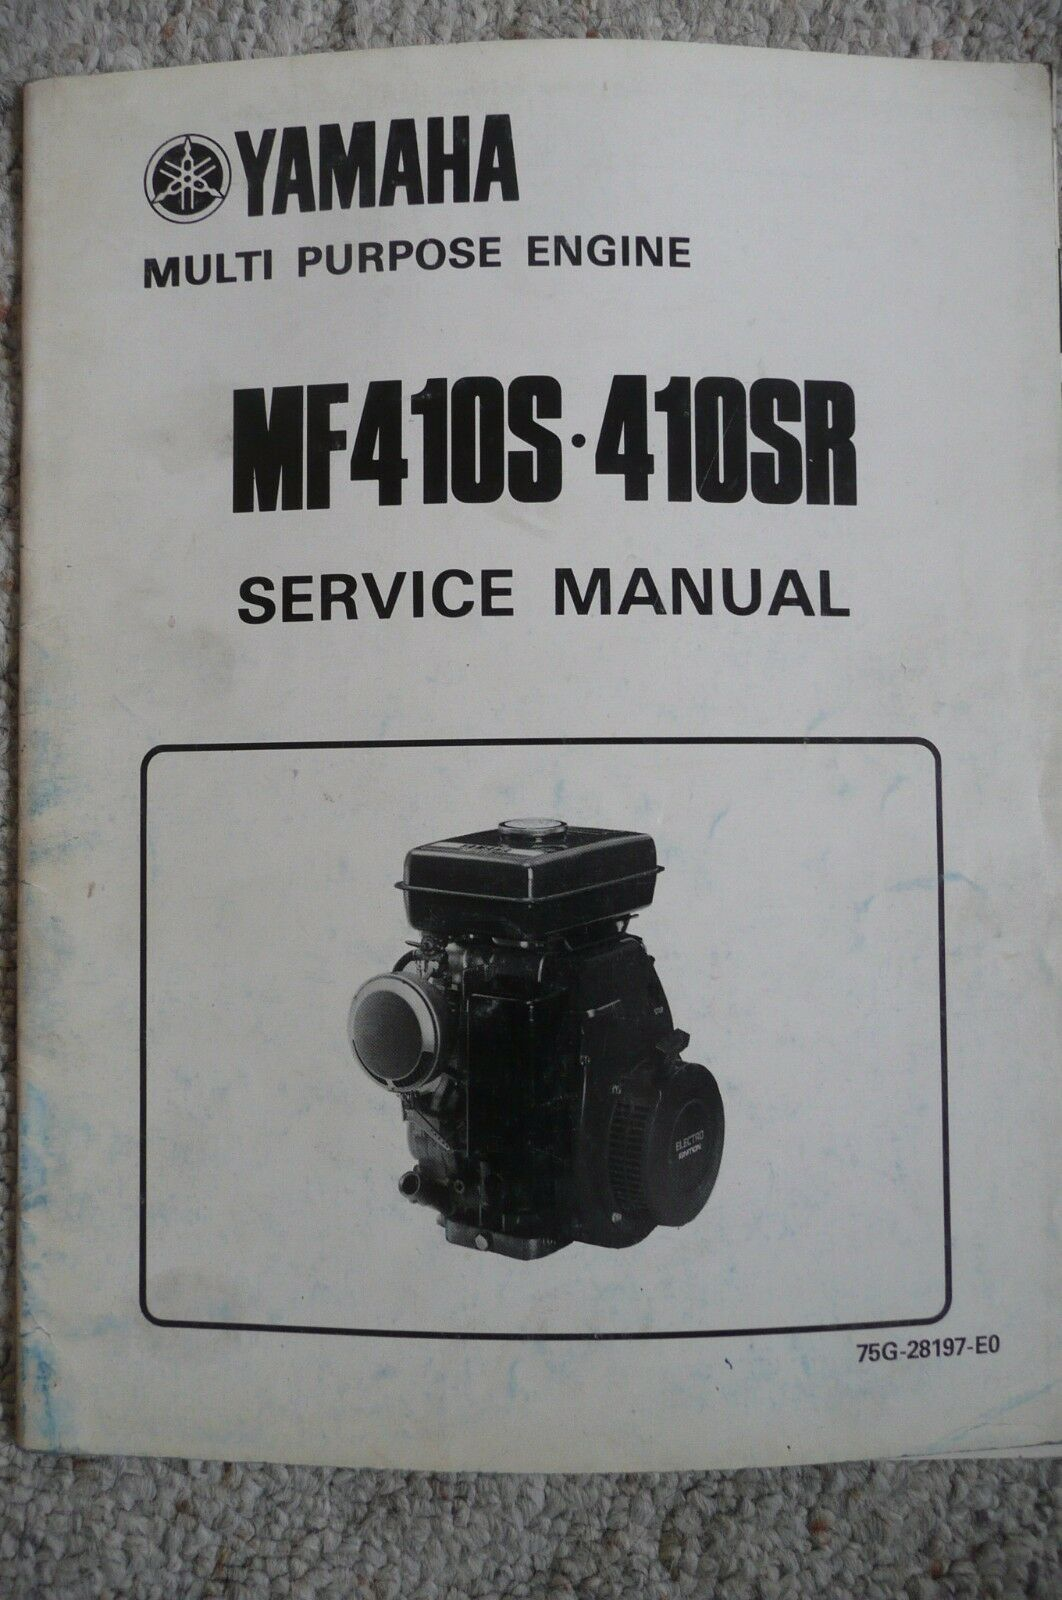 Yamaha MF410S MF410SR Multi Purpose Engine Service Repair Manual OEM 1 of  3Only 1 available See More